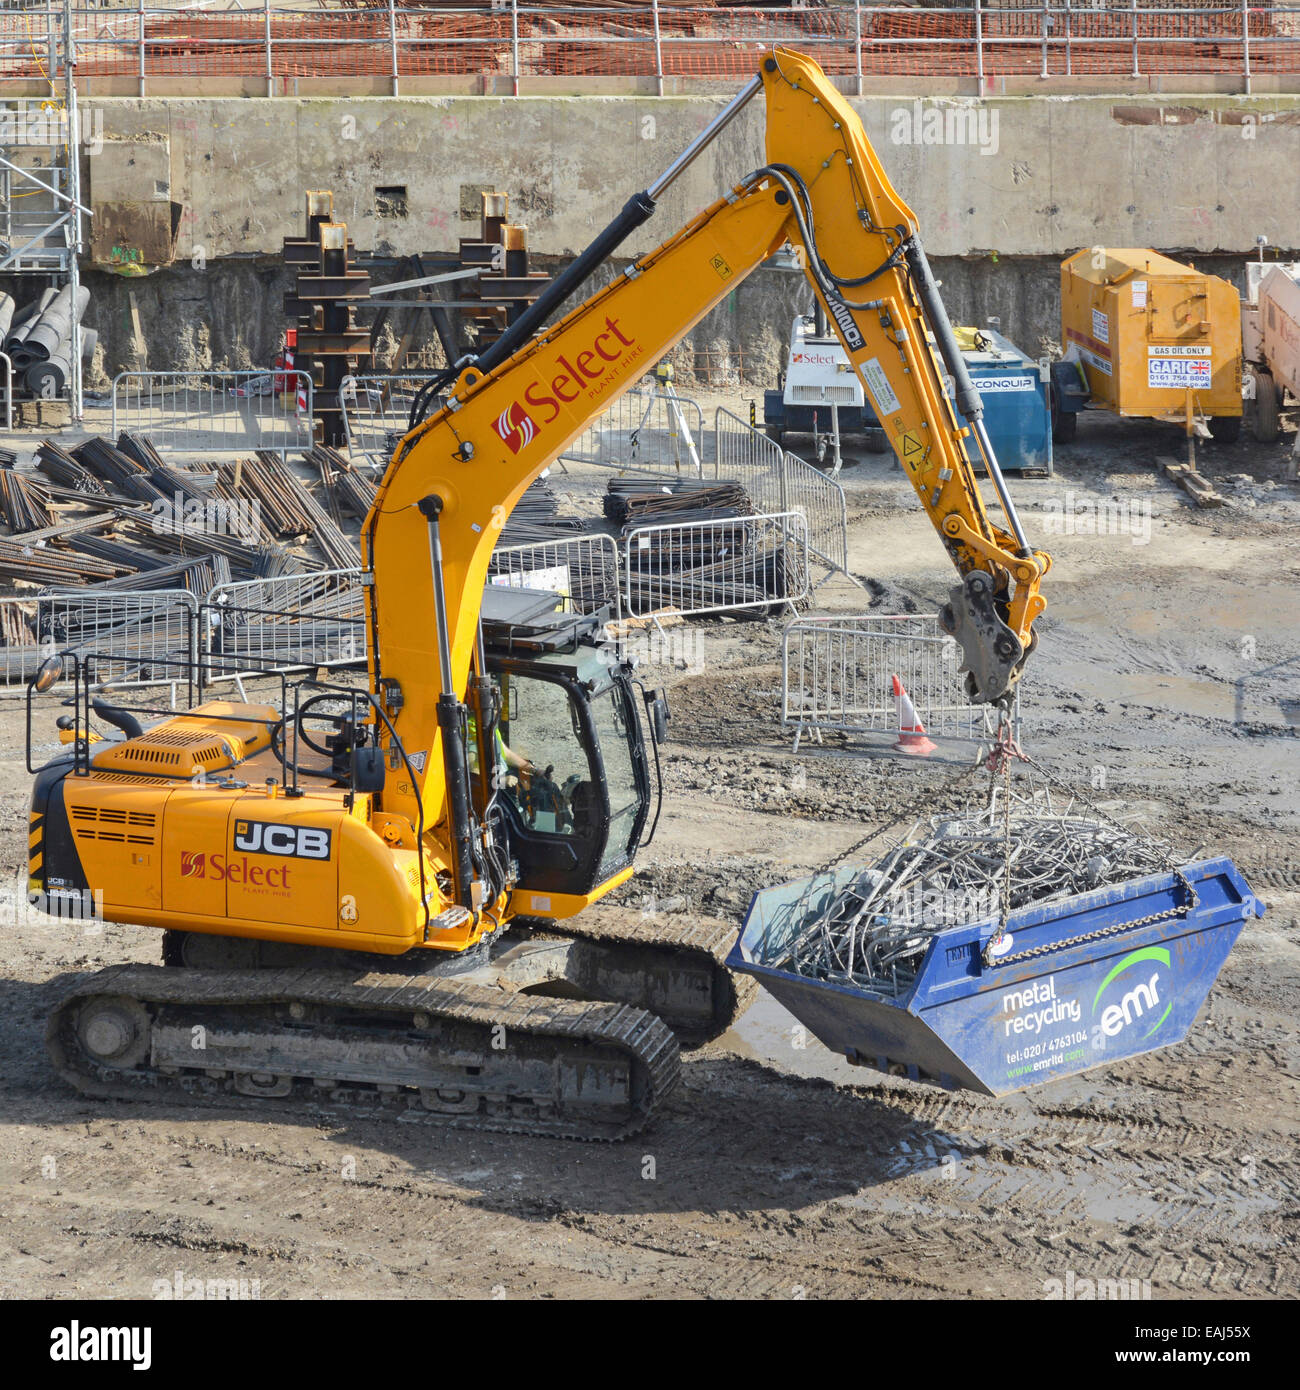 JCB excavator digger carrying recycling skip of steel bars across basement construction site - Stock Image